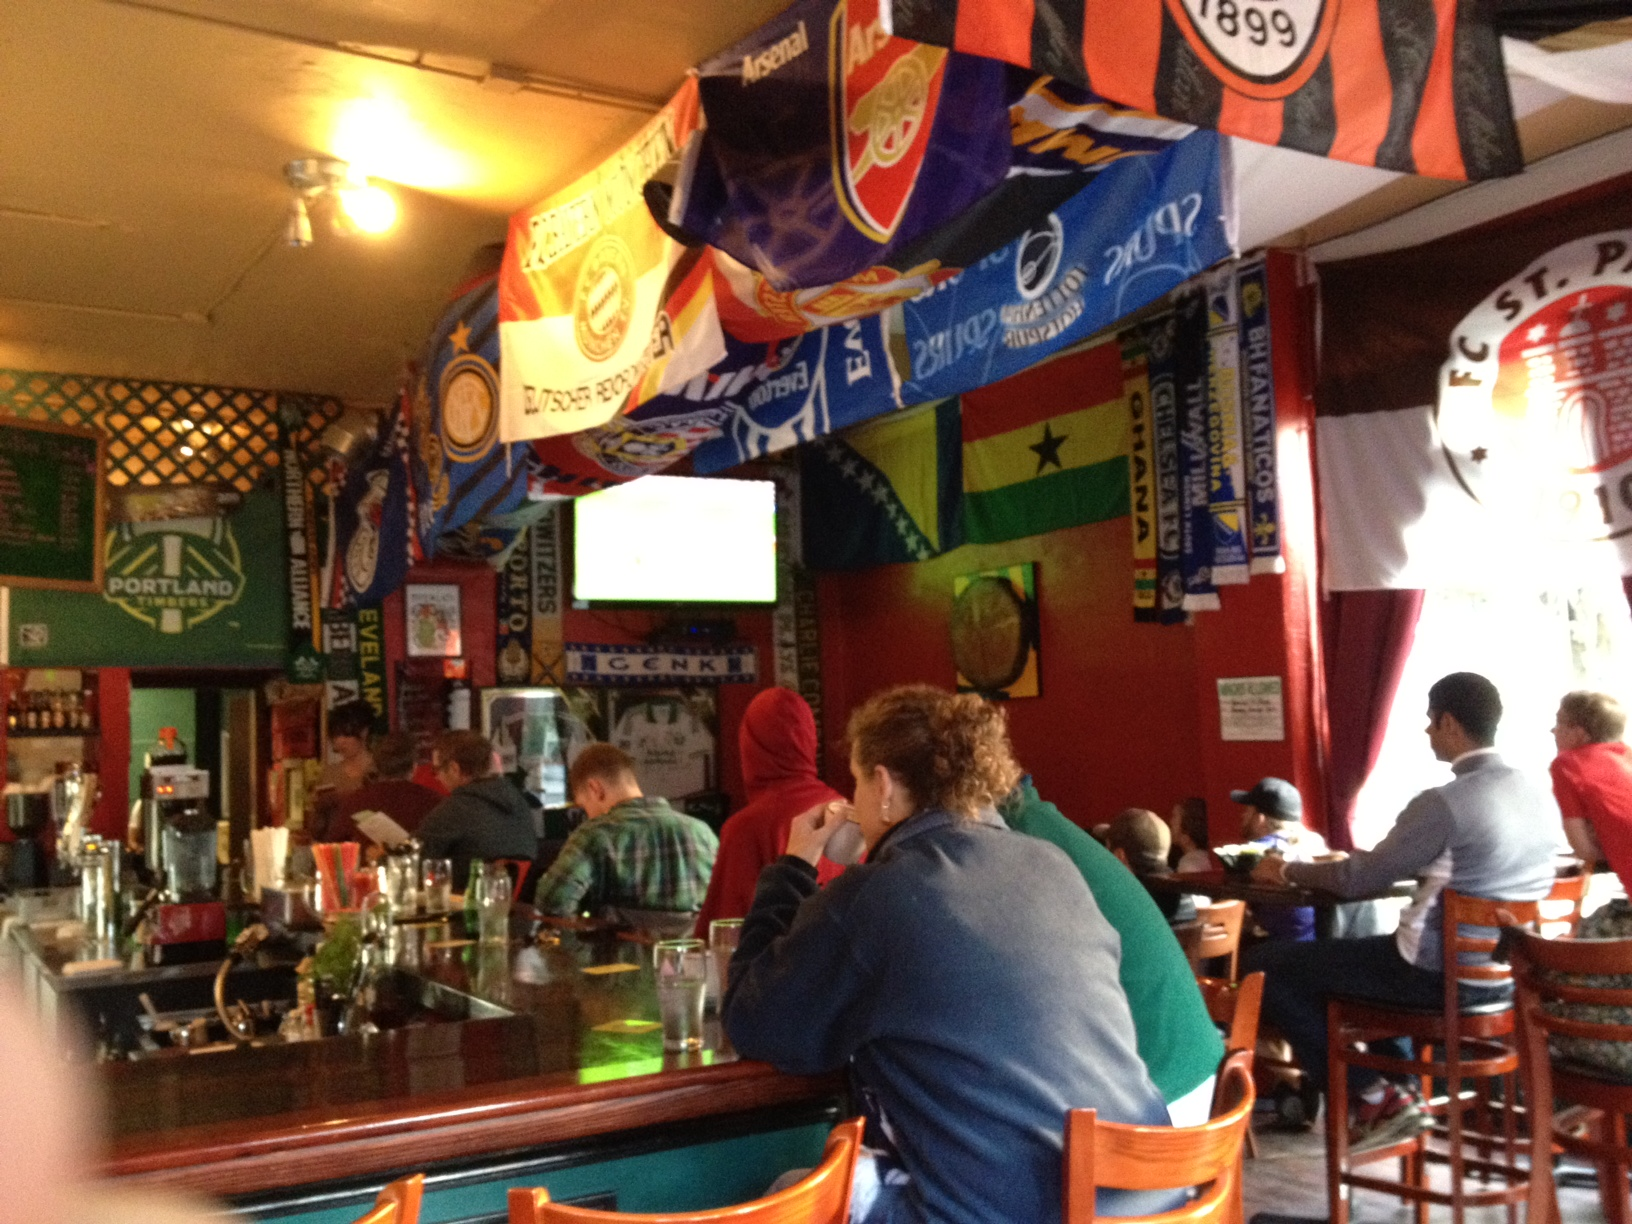 The Premier League Bar Viewing Experience In Portland, Oregon